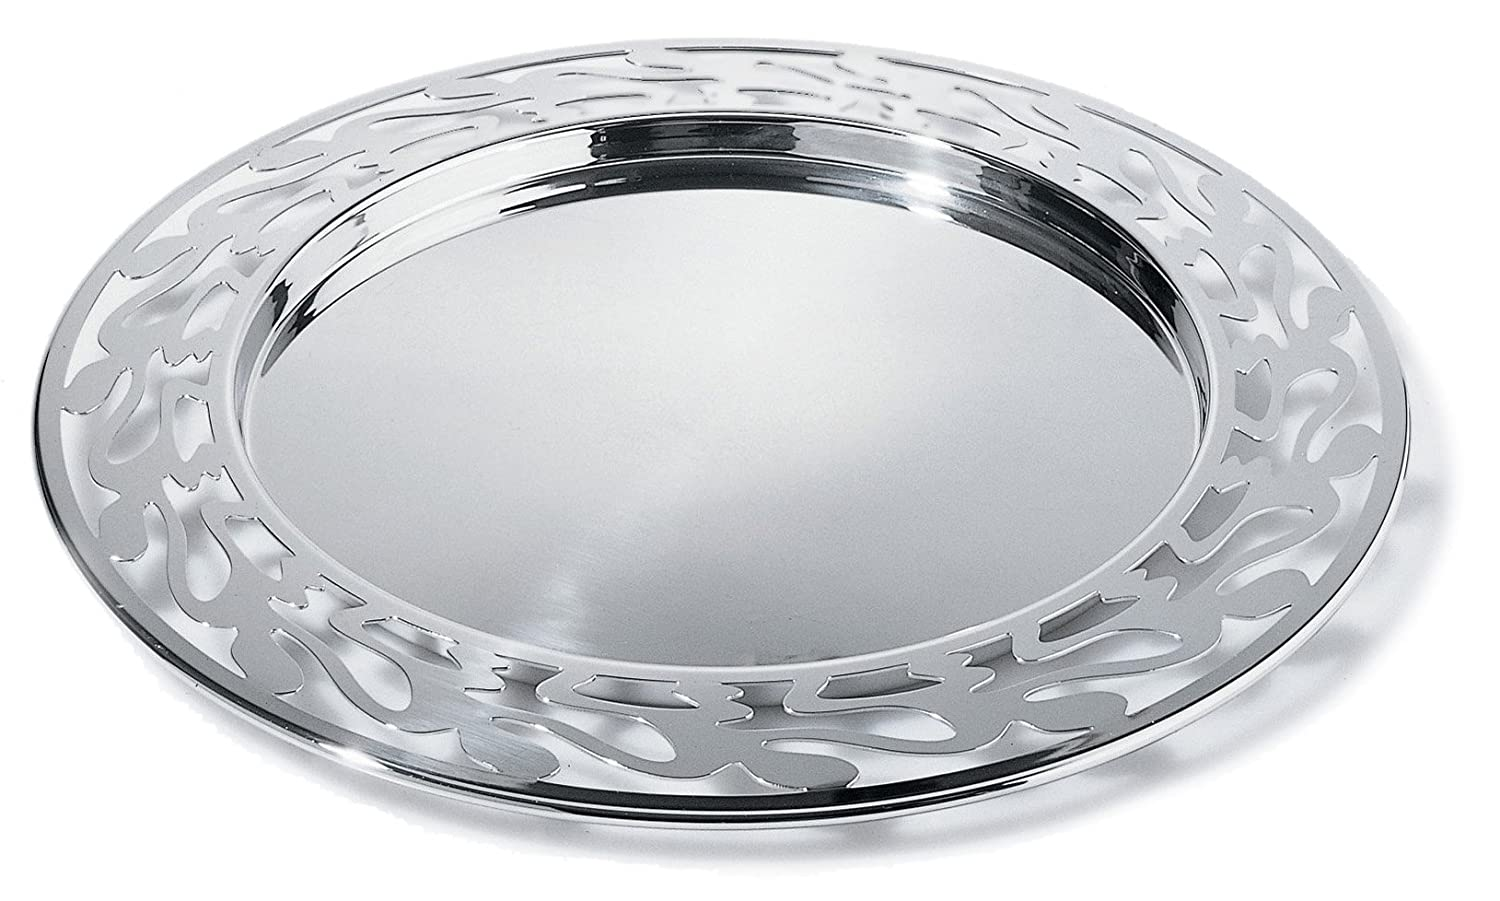 Alessi SG30 Ethno Round Serving Tray - 18/10 Stainless Steel Mirror Polished Giovannoni Stefano Round tray Serveware_Trays_Platters Tabletop